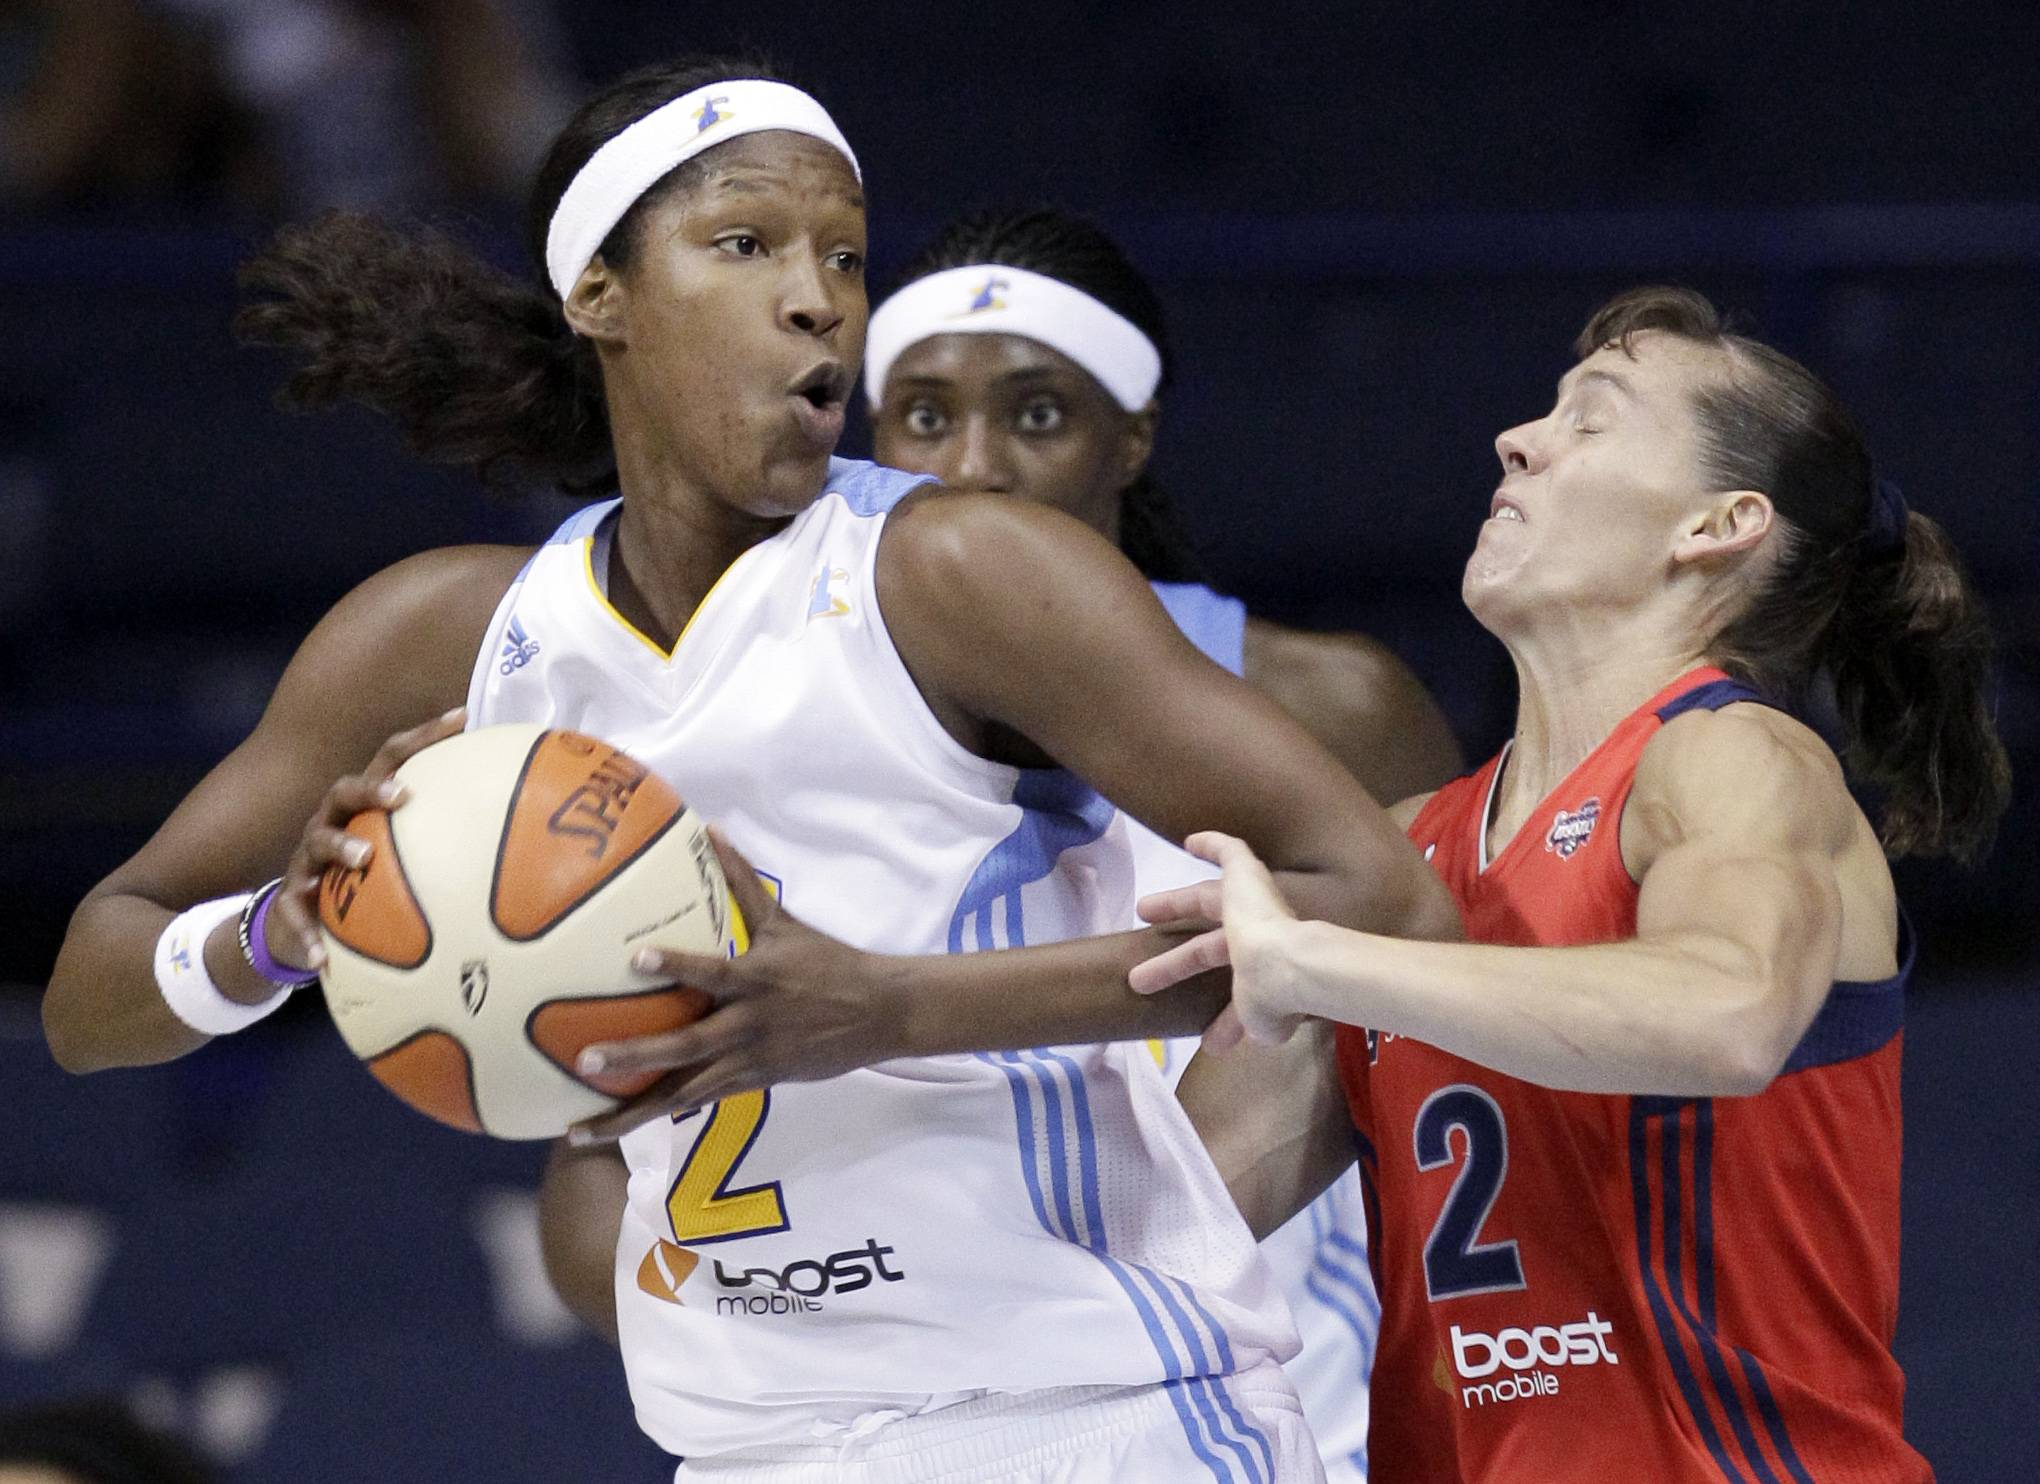 Michelle Snow, left, rebounds the ball against Washington Mystics' Kelly Miller during the fourth quarter Friday night at Allstate Arena.